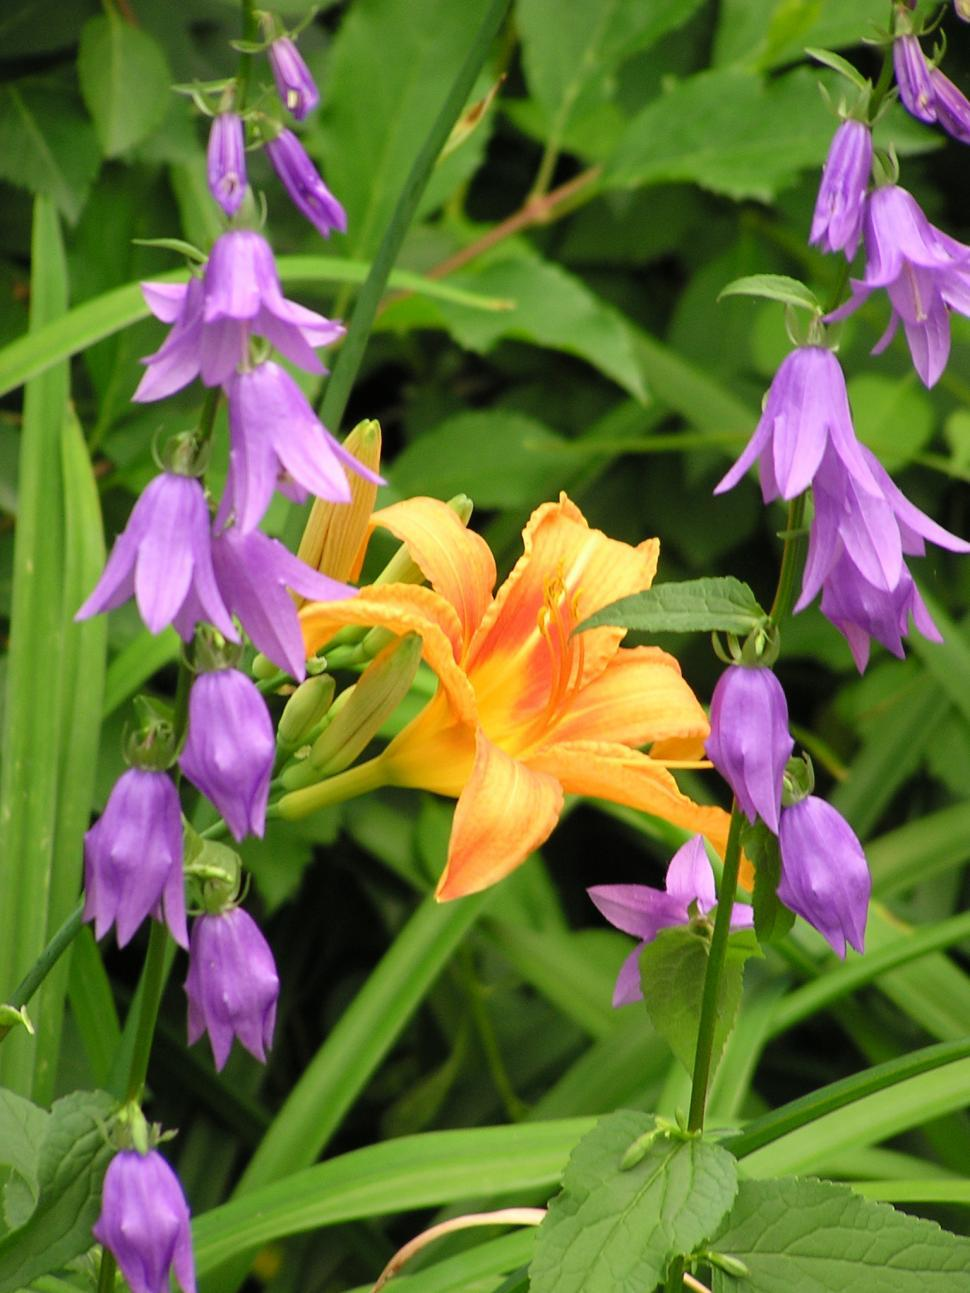 Download Free Stock HD Photo of Purple and Orange Flowers in Bloom Online